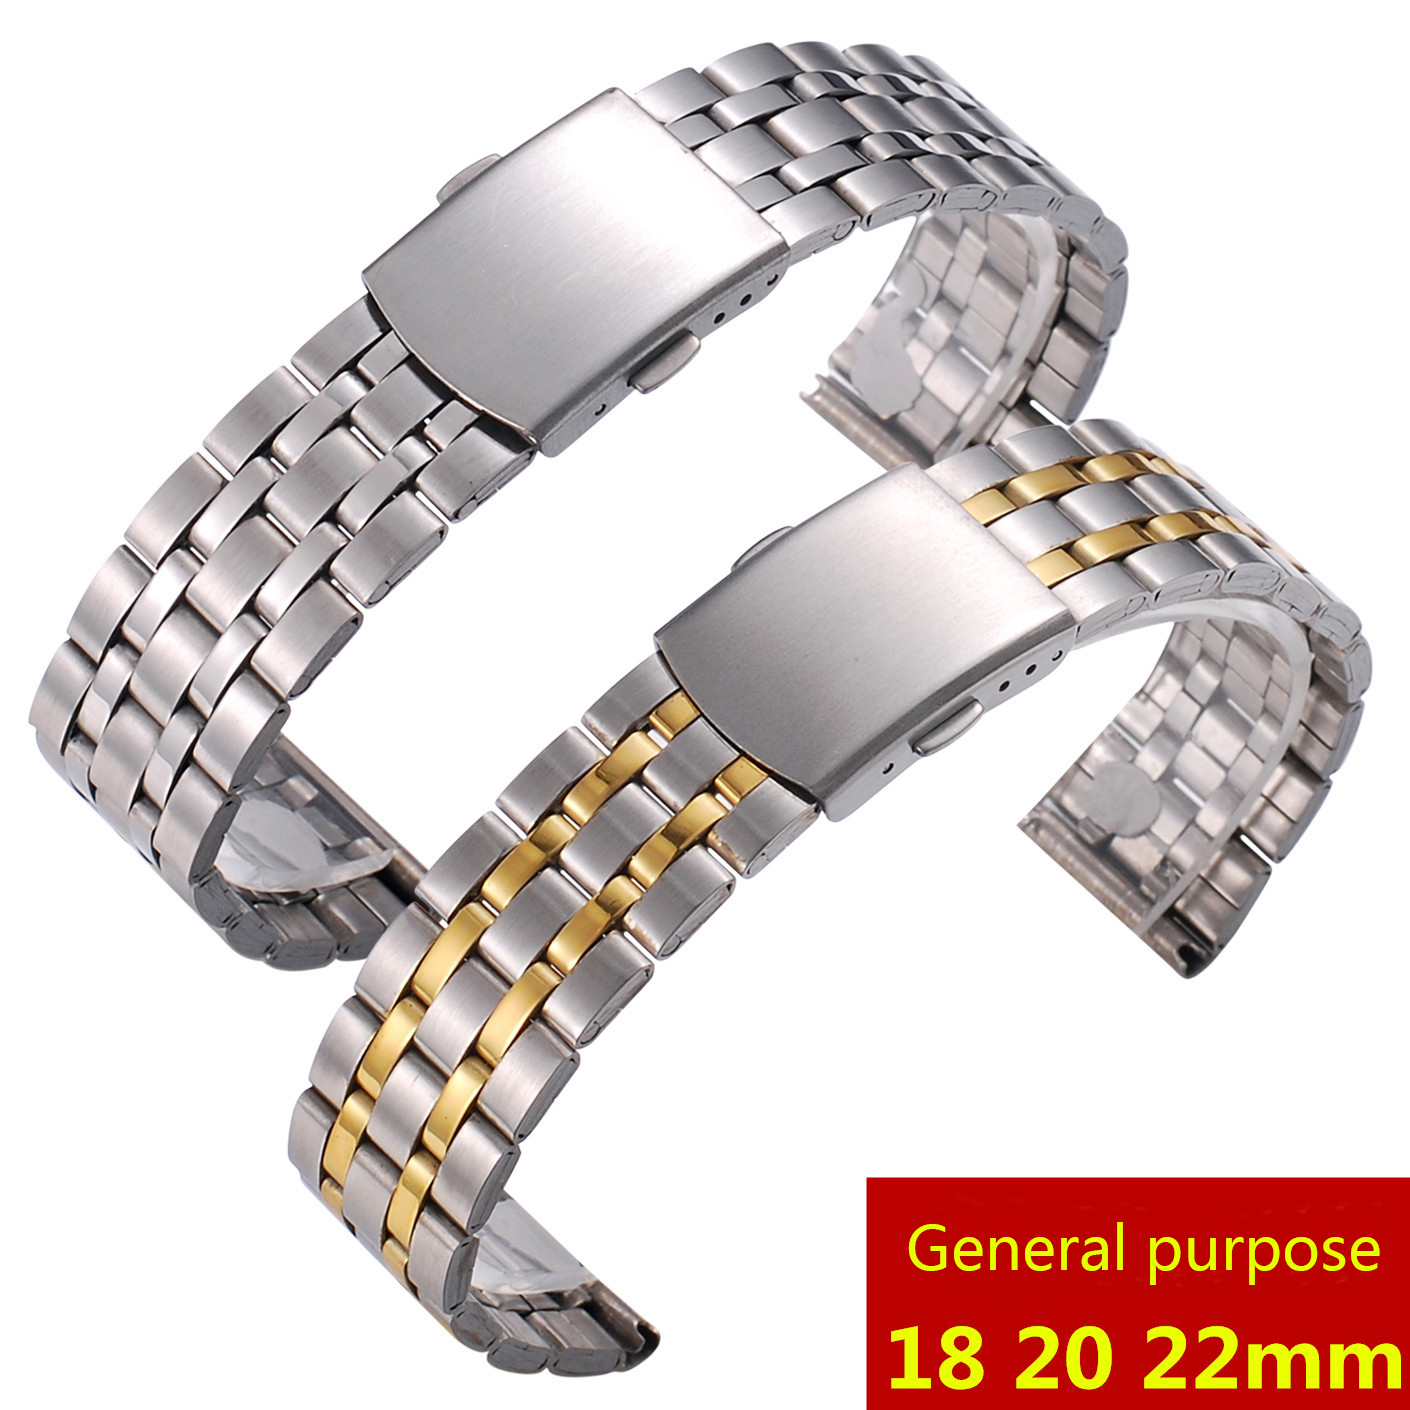 Watch Band Strap General Purpose Bilateral Button Stainless Steel Bracelet Band Strap Watch With 18 20 22mm Wristband Watchband